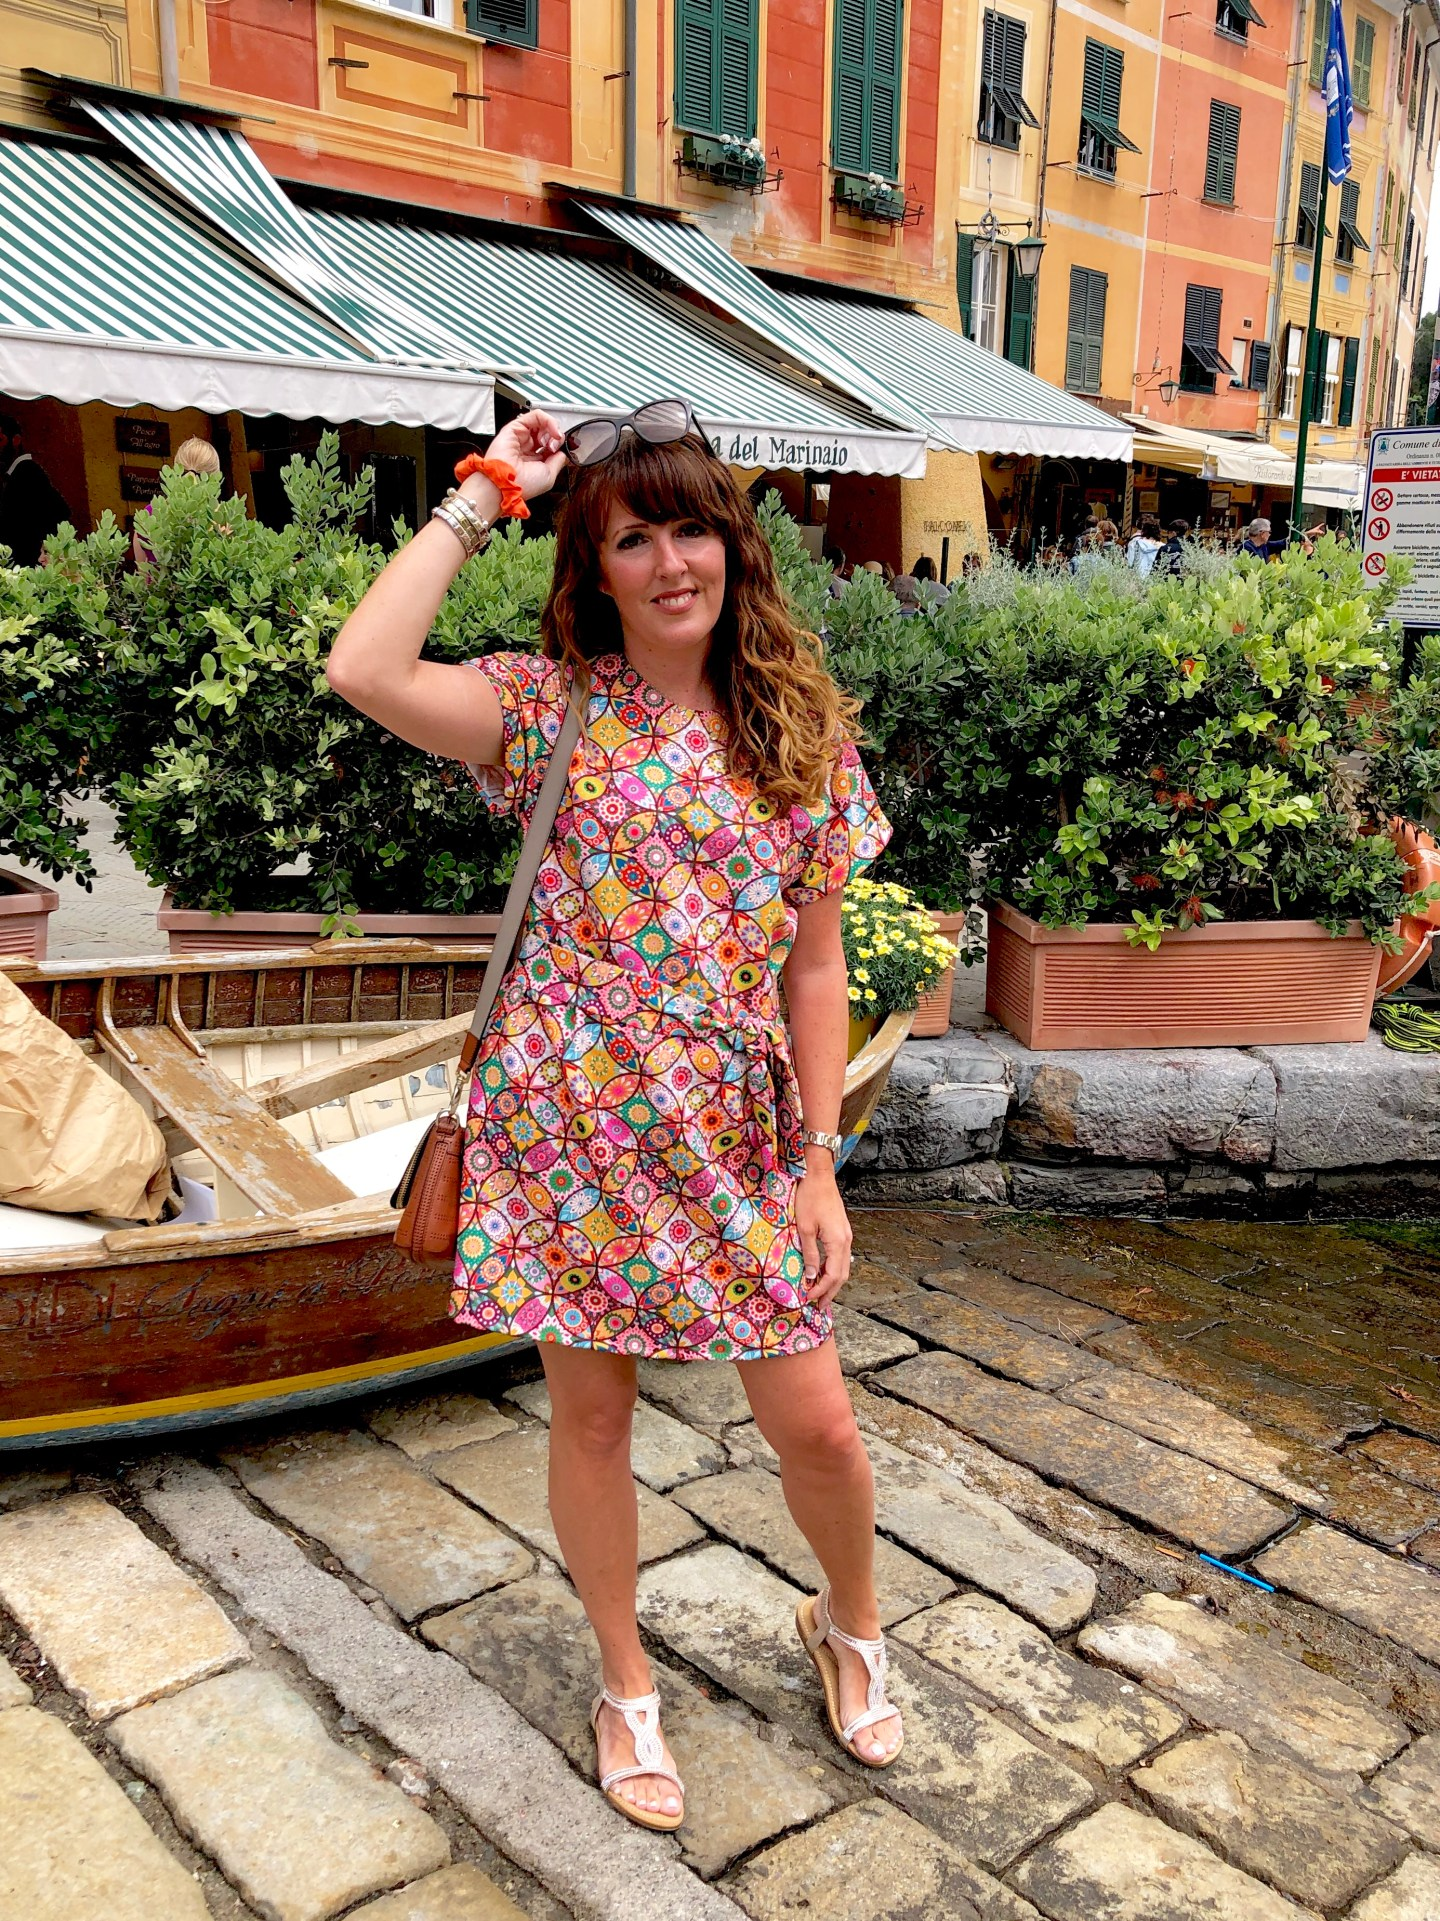 A Tilly and the Buttons Stevie dress pattern made in Scuba fabric purchased in spain photo taken in Portofino Italy